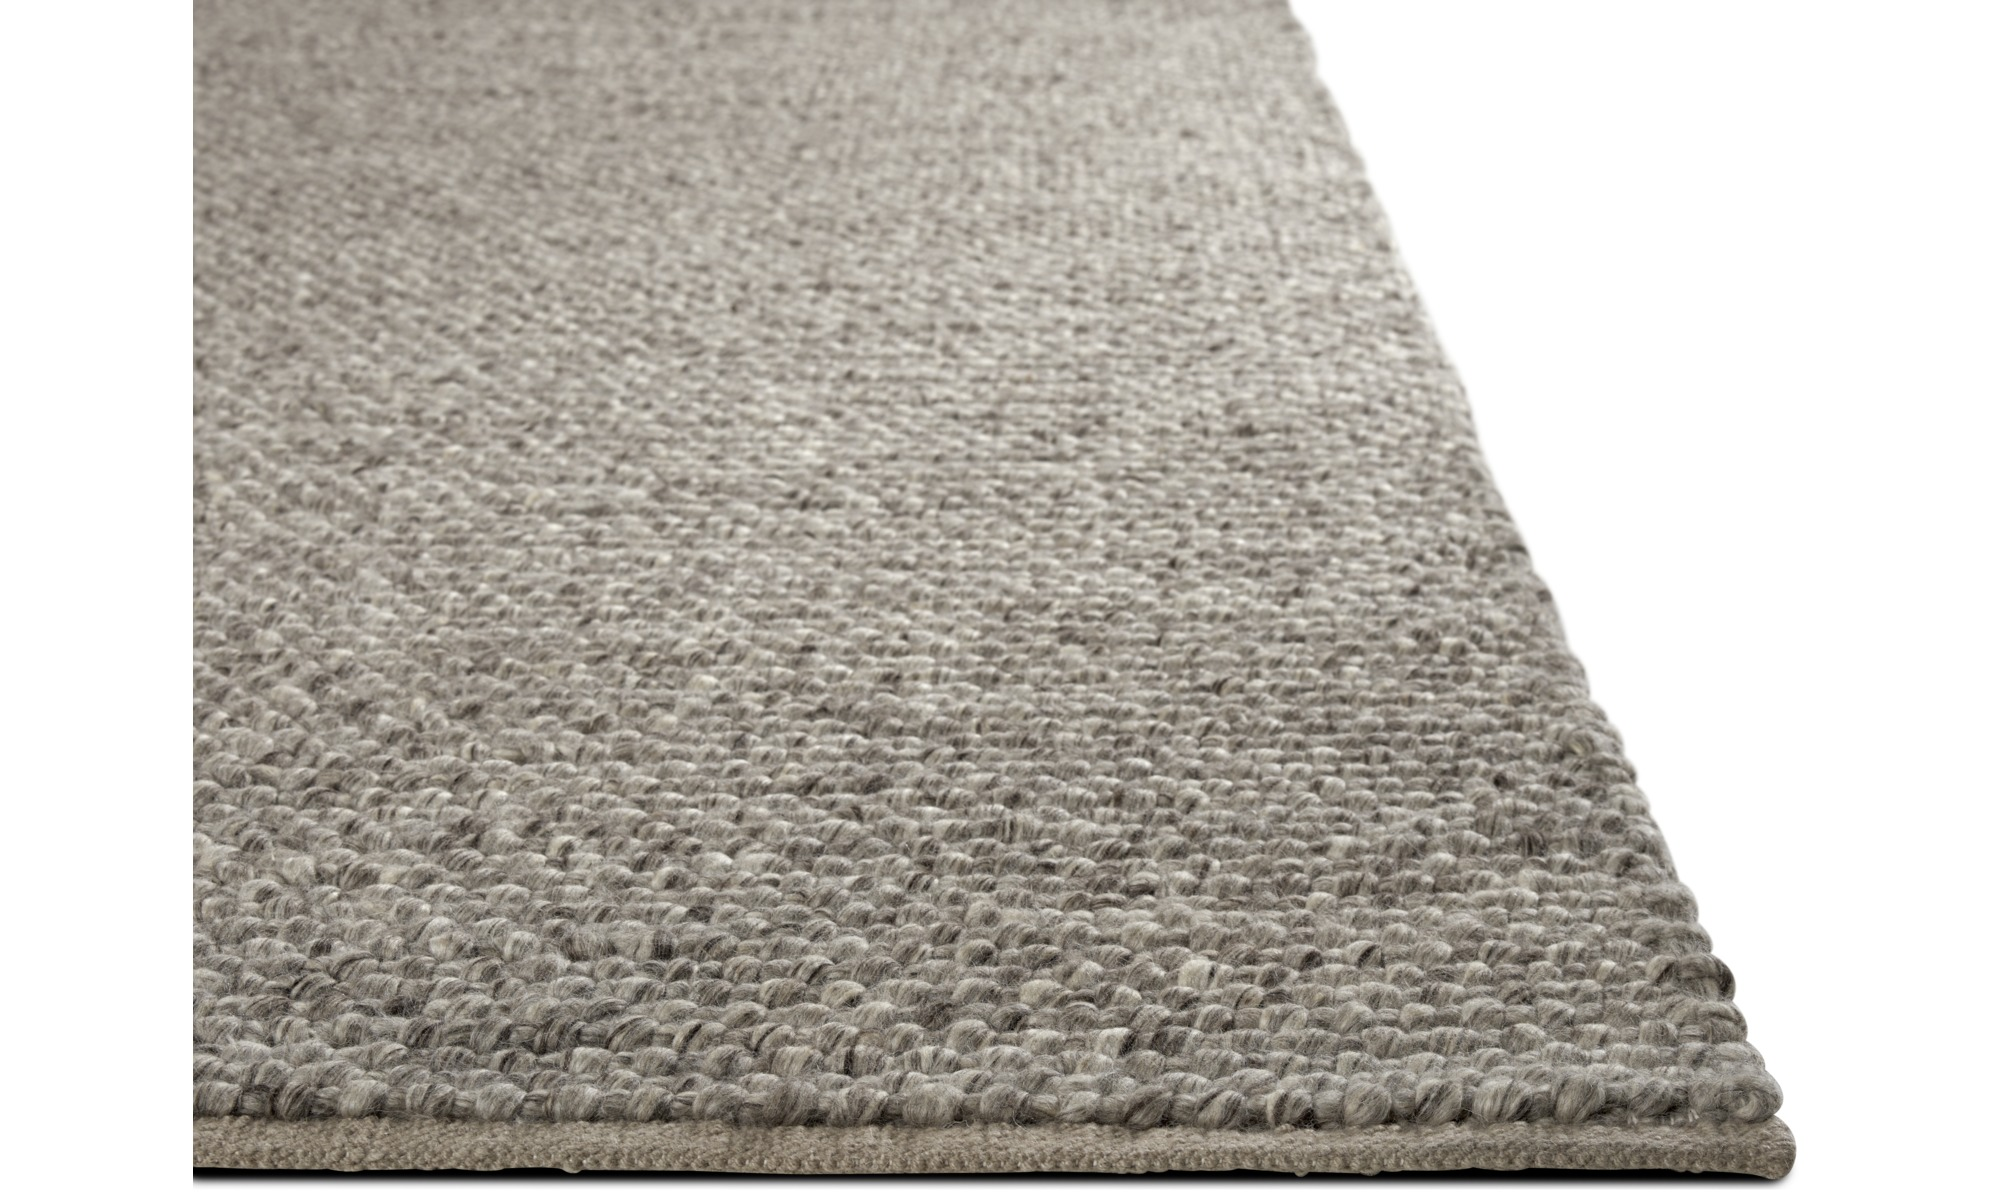 ... Rectangular Rugs   Northern Rug   Rectangular   Gray   Fabric